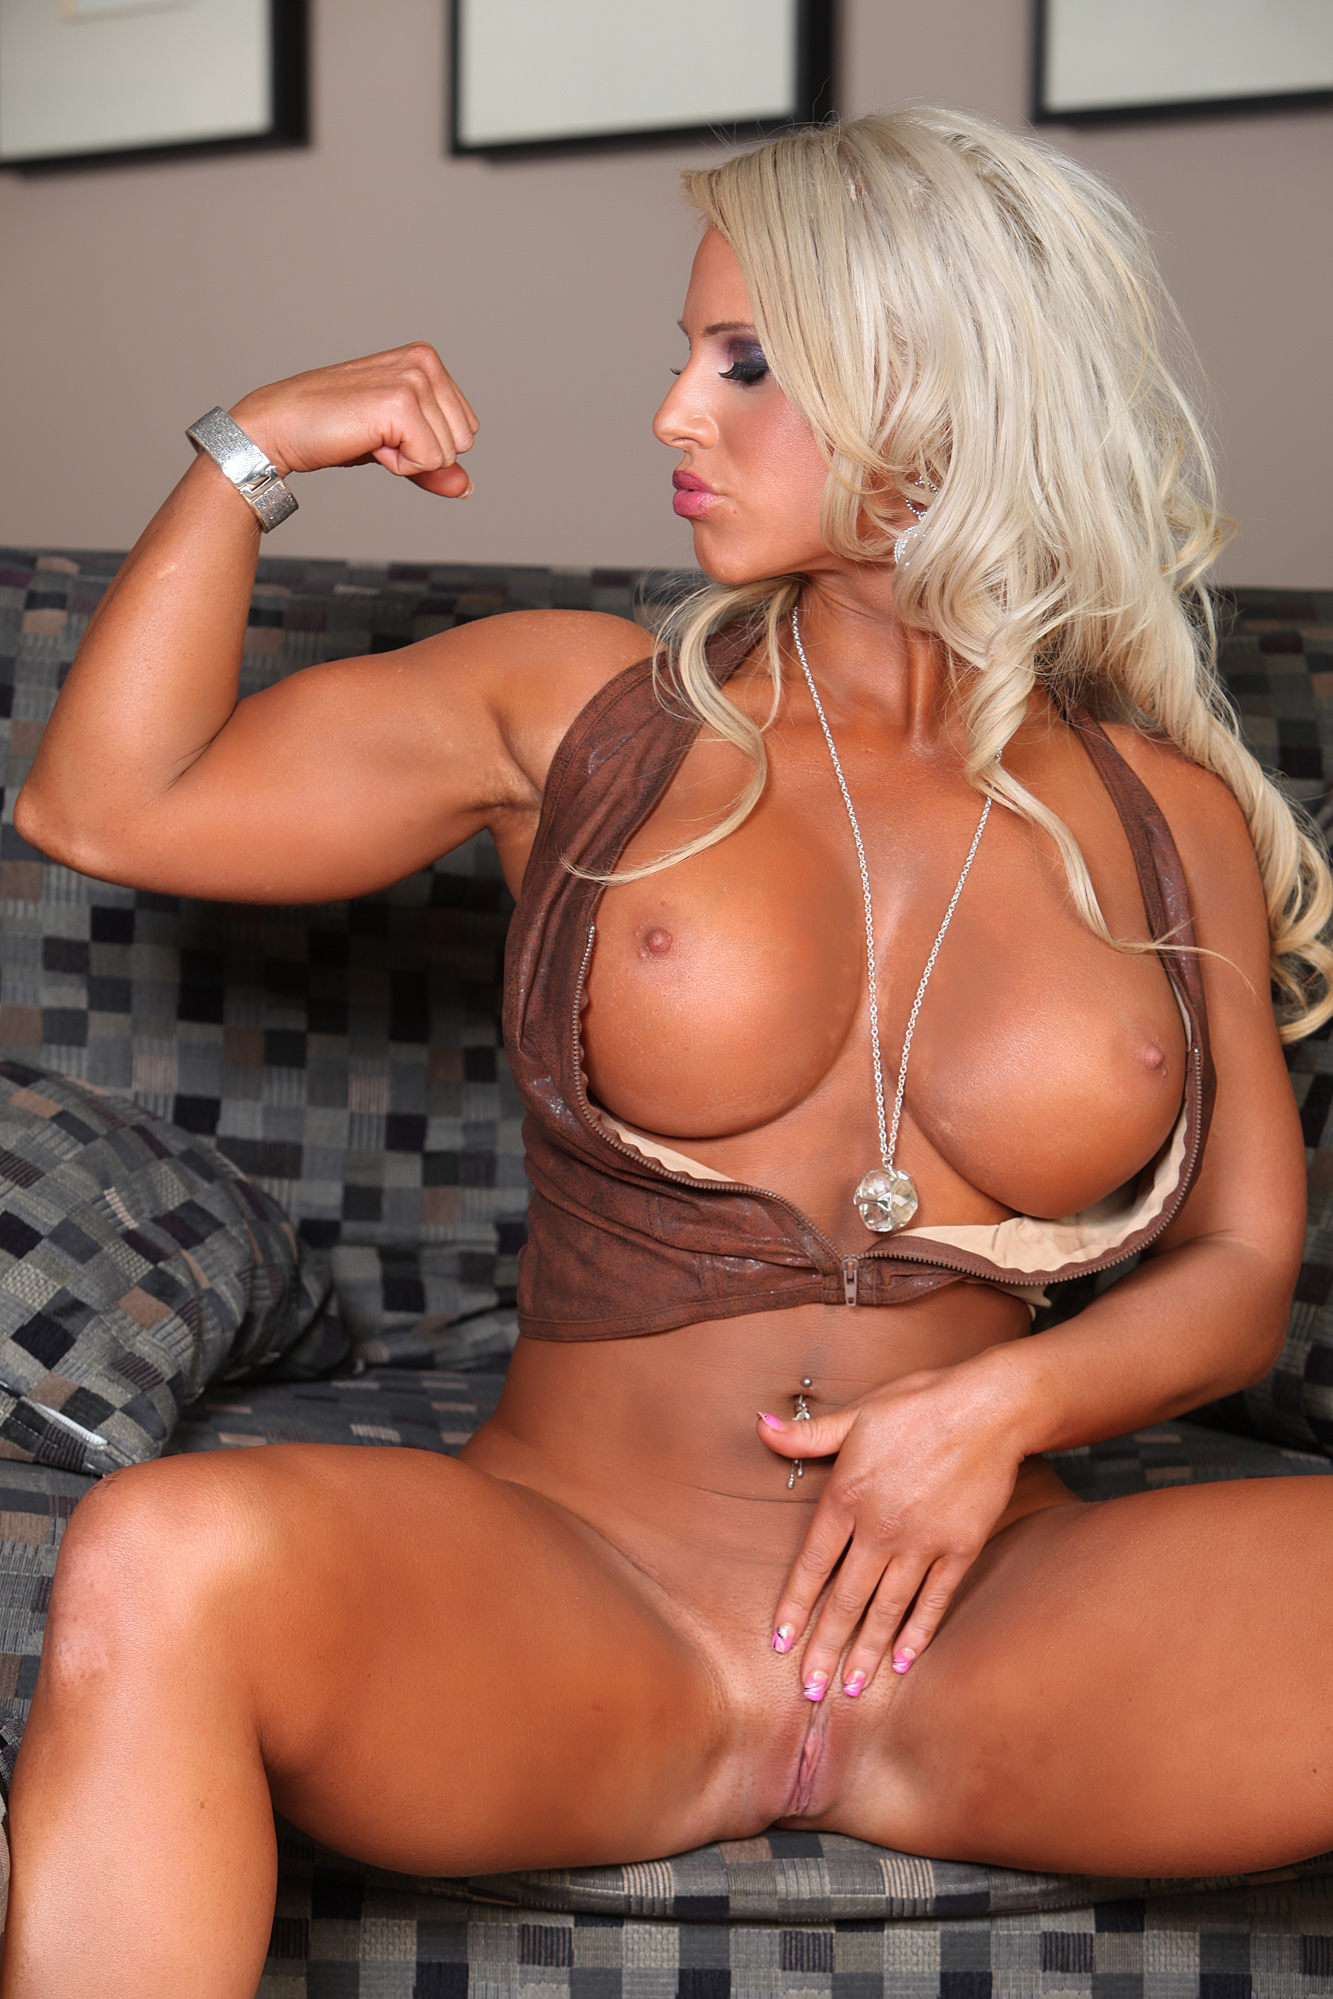 Maybe, were megan avalon fitness model nude